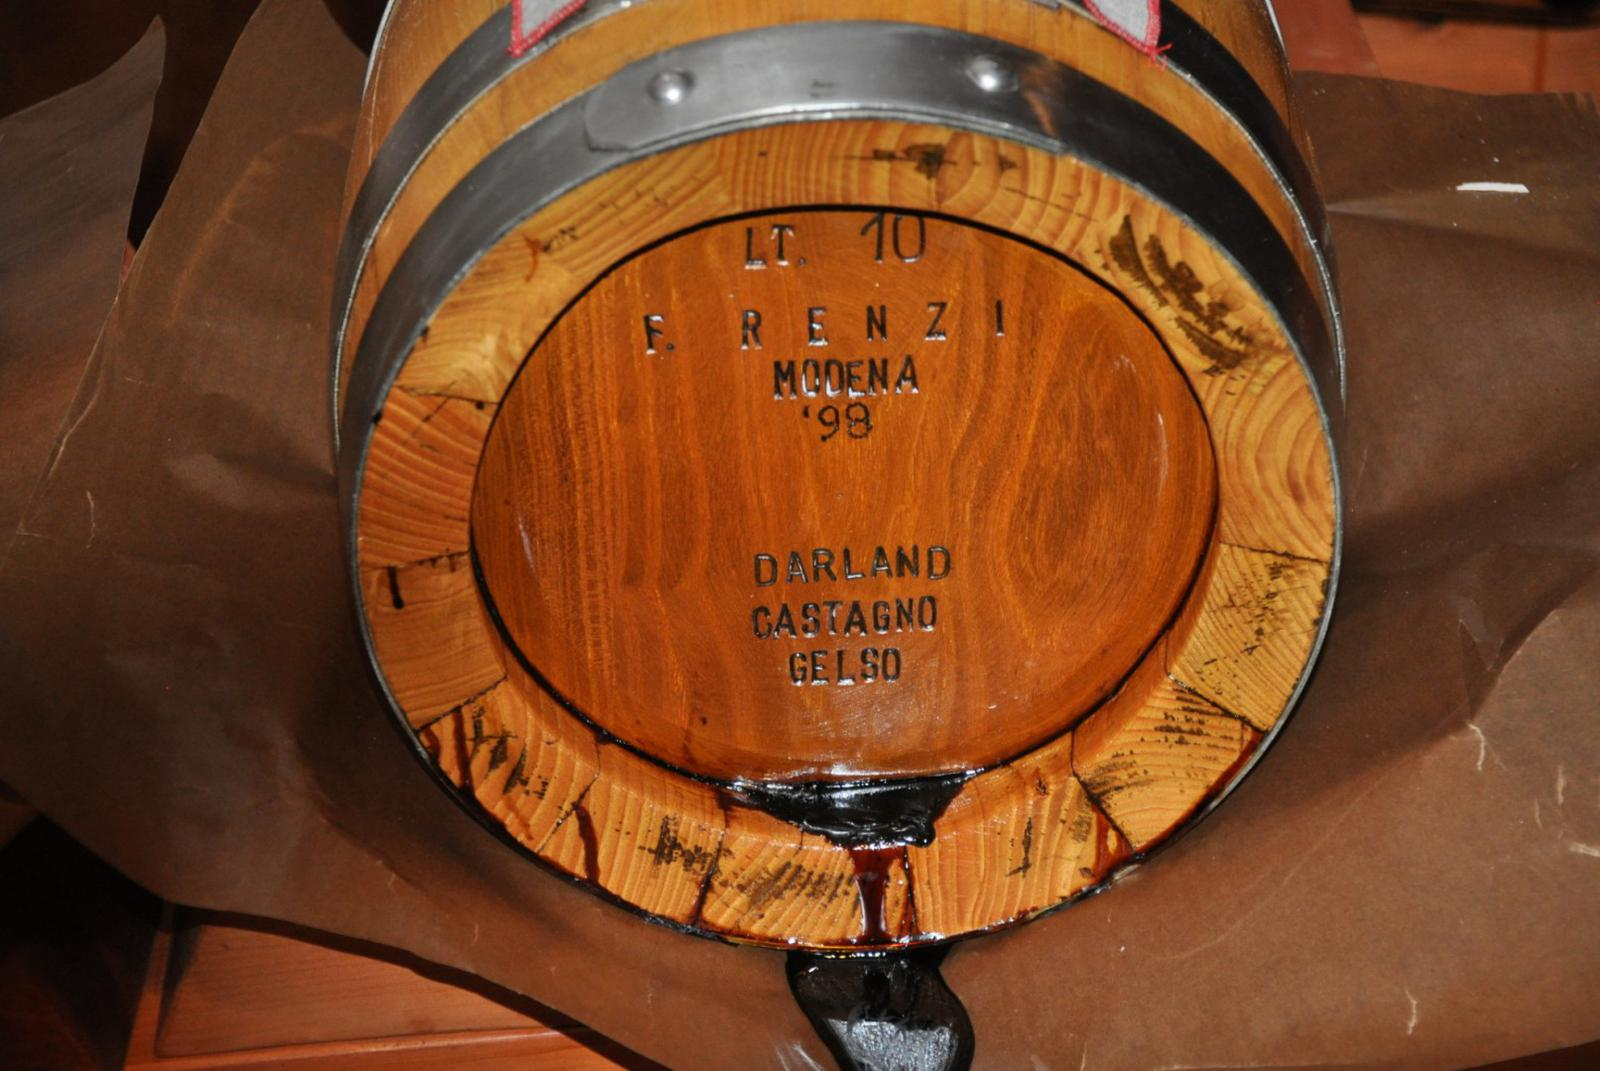 Renzi barrel Balsamic Vinegar New Mexico